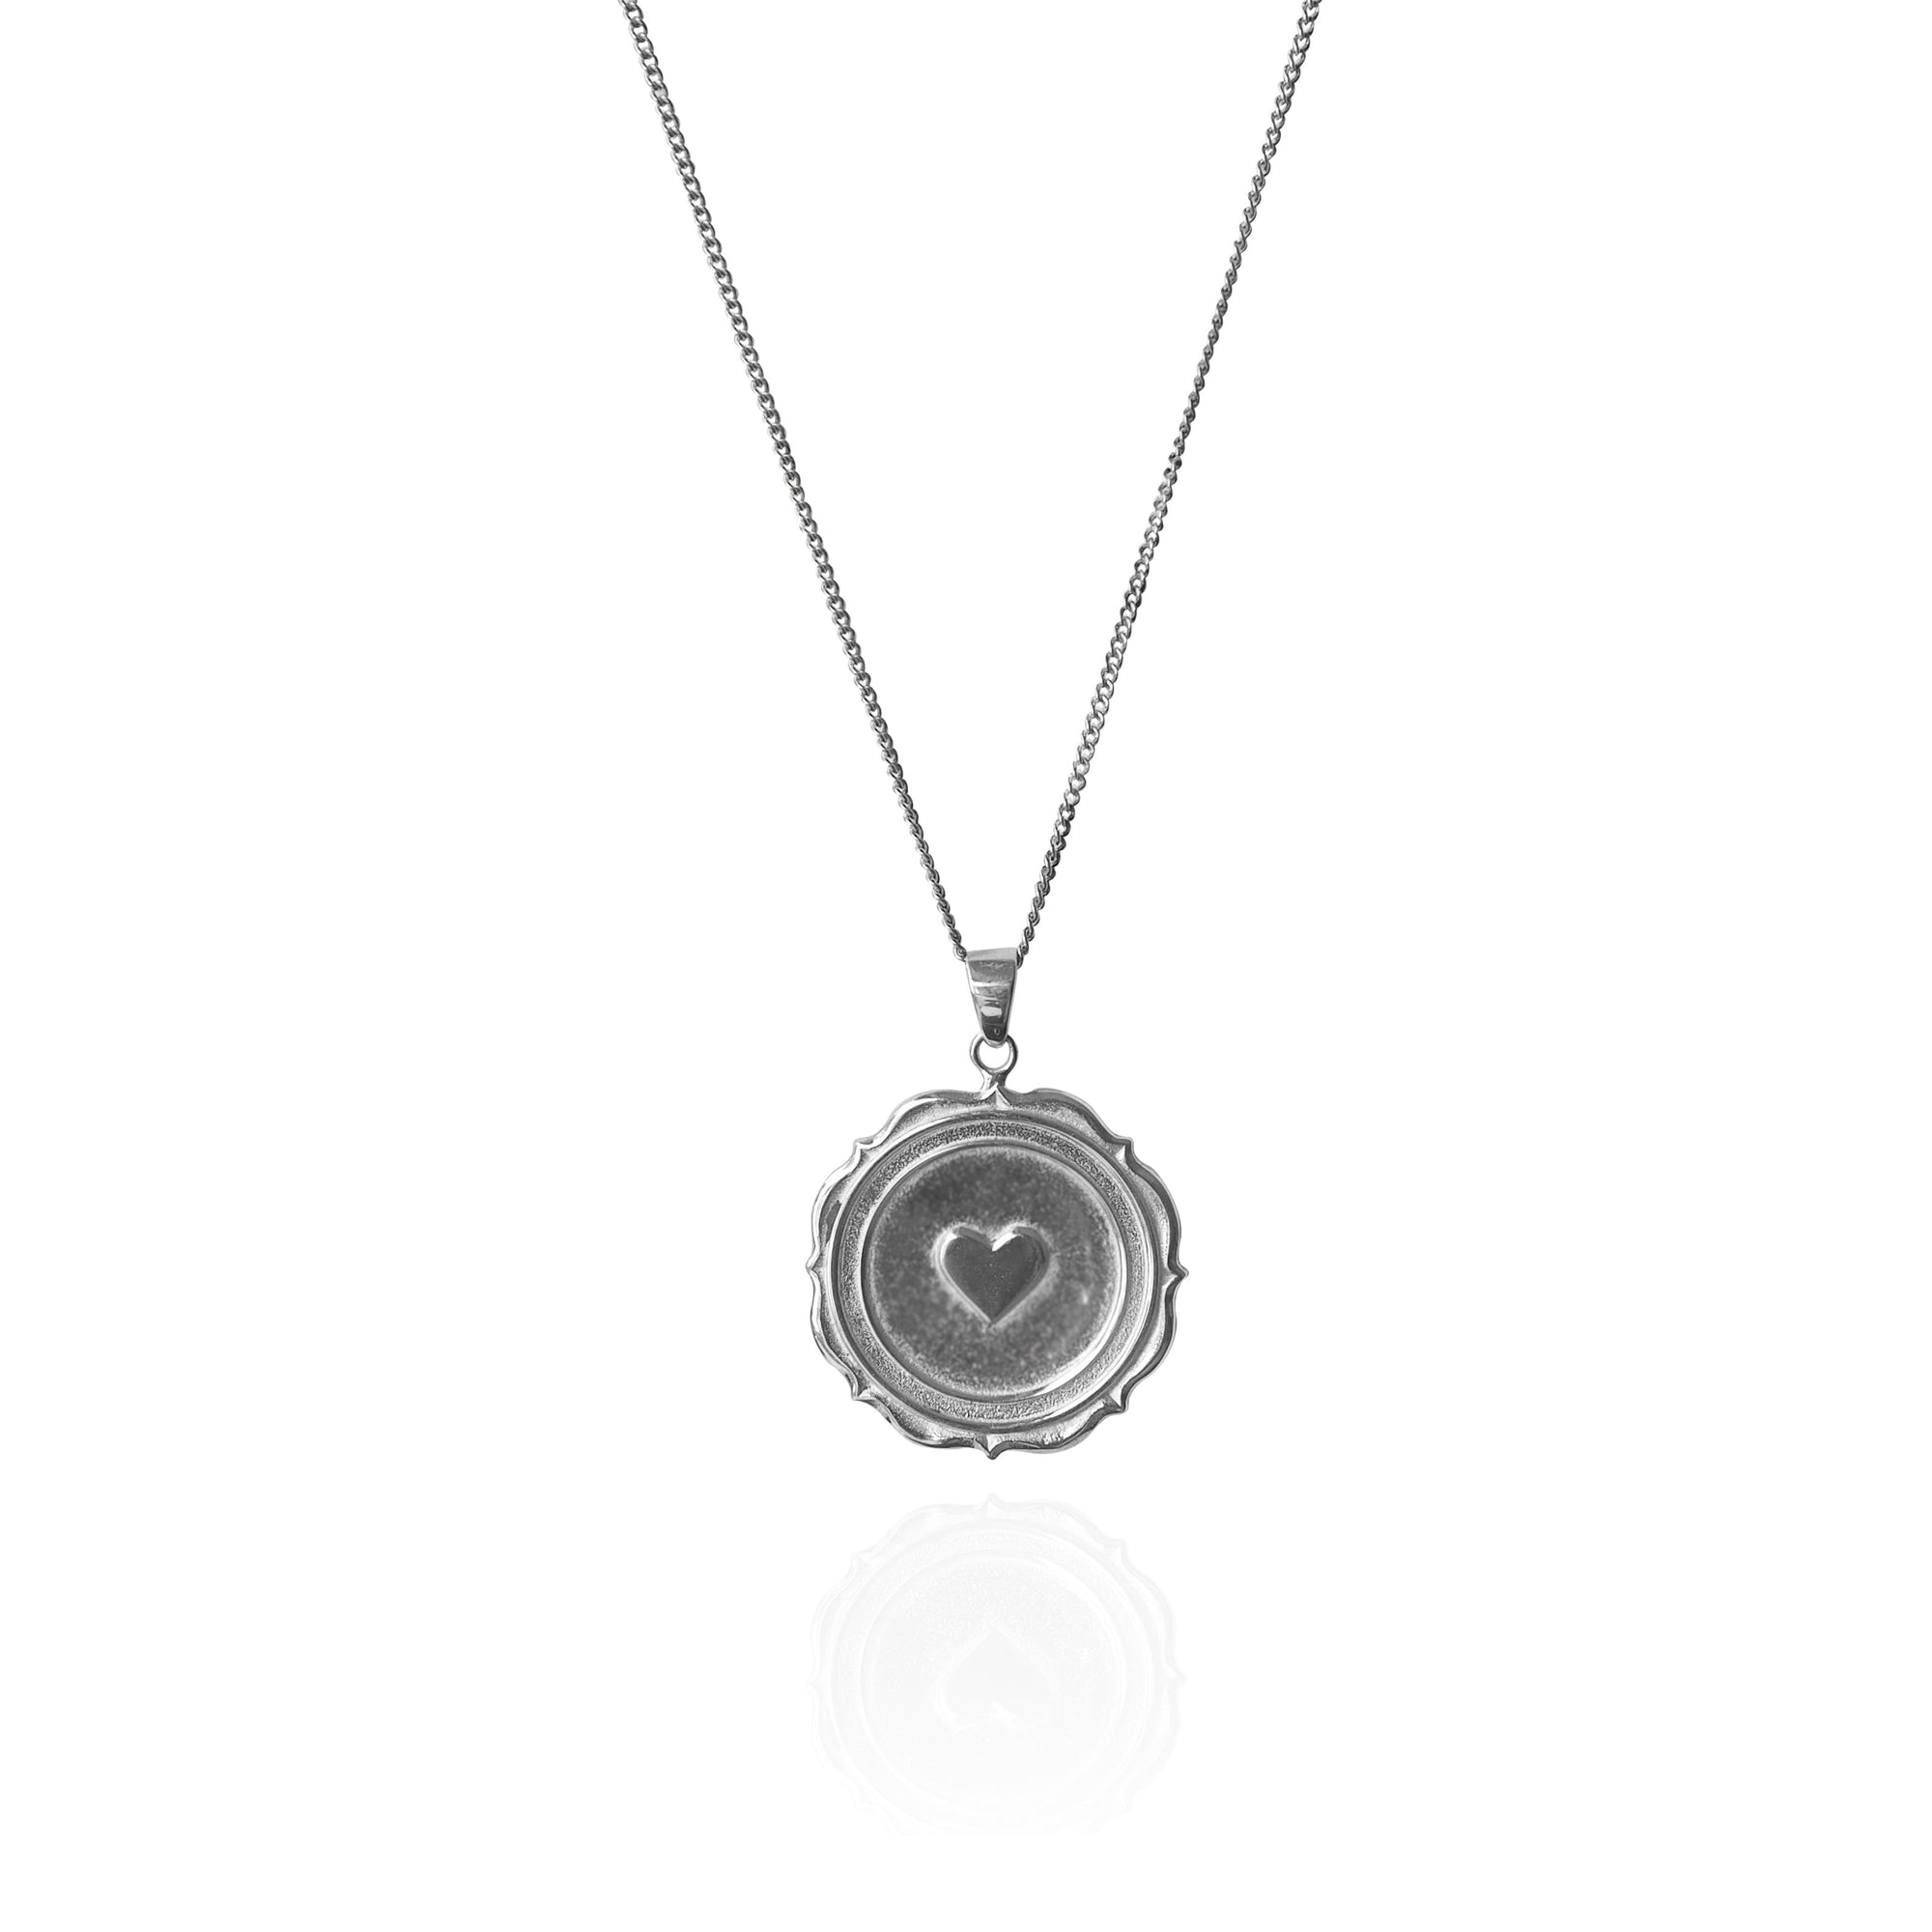 SERENA 'LOVE' NECKLACE PENDANT - SILVER